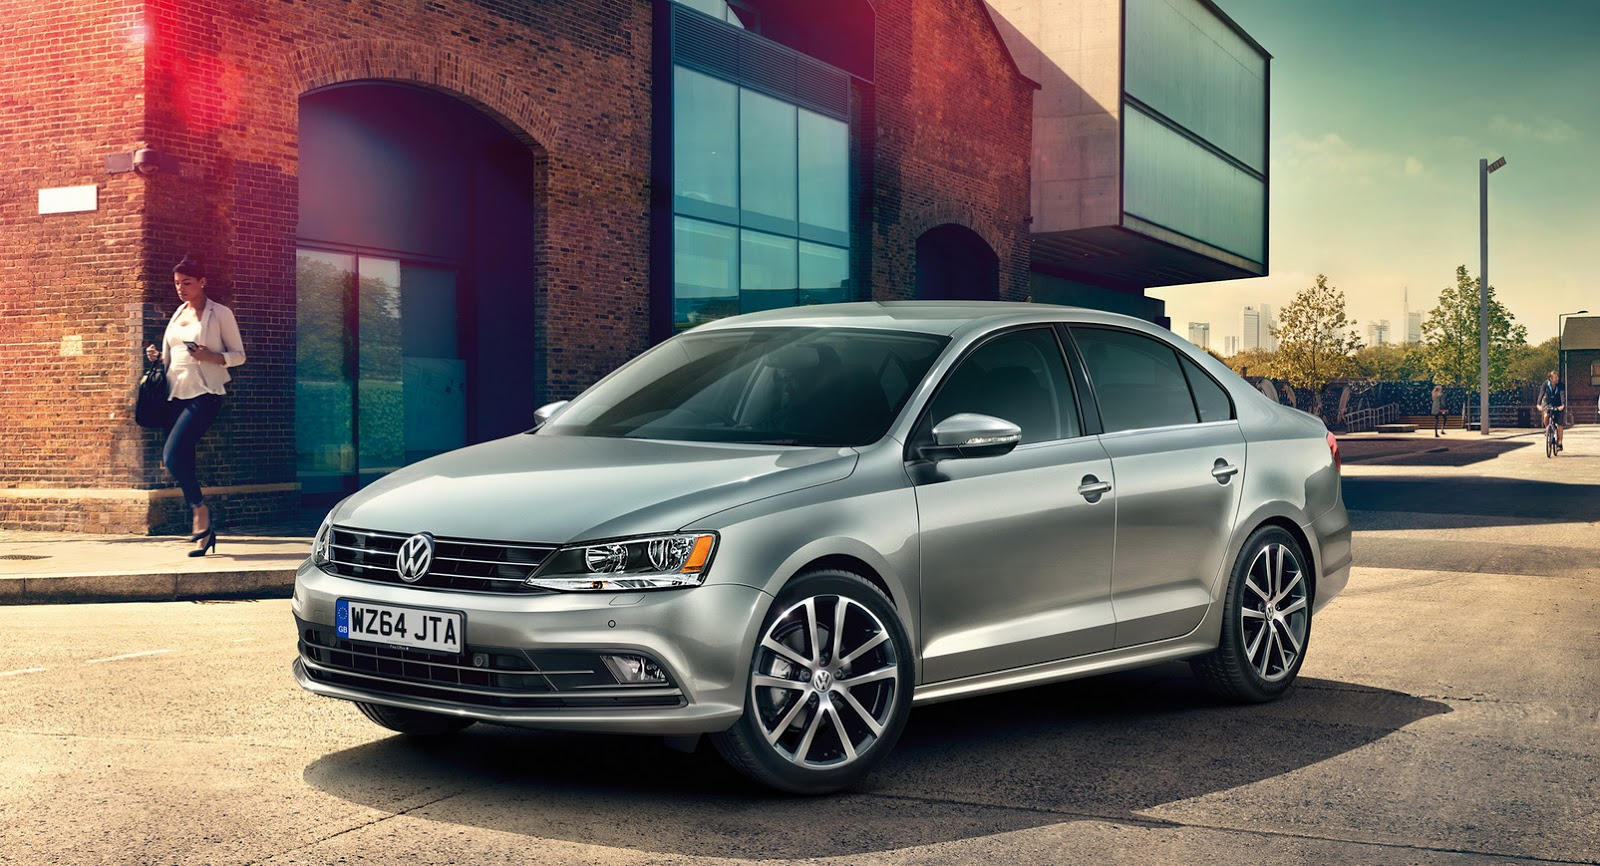 Updated 2015 VW Jetta Priced for the UK